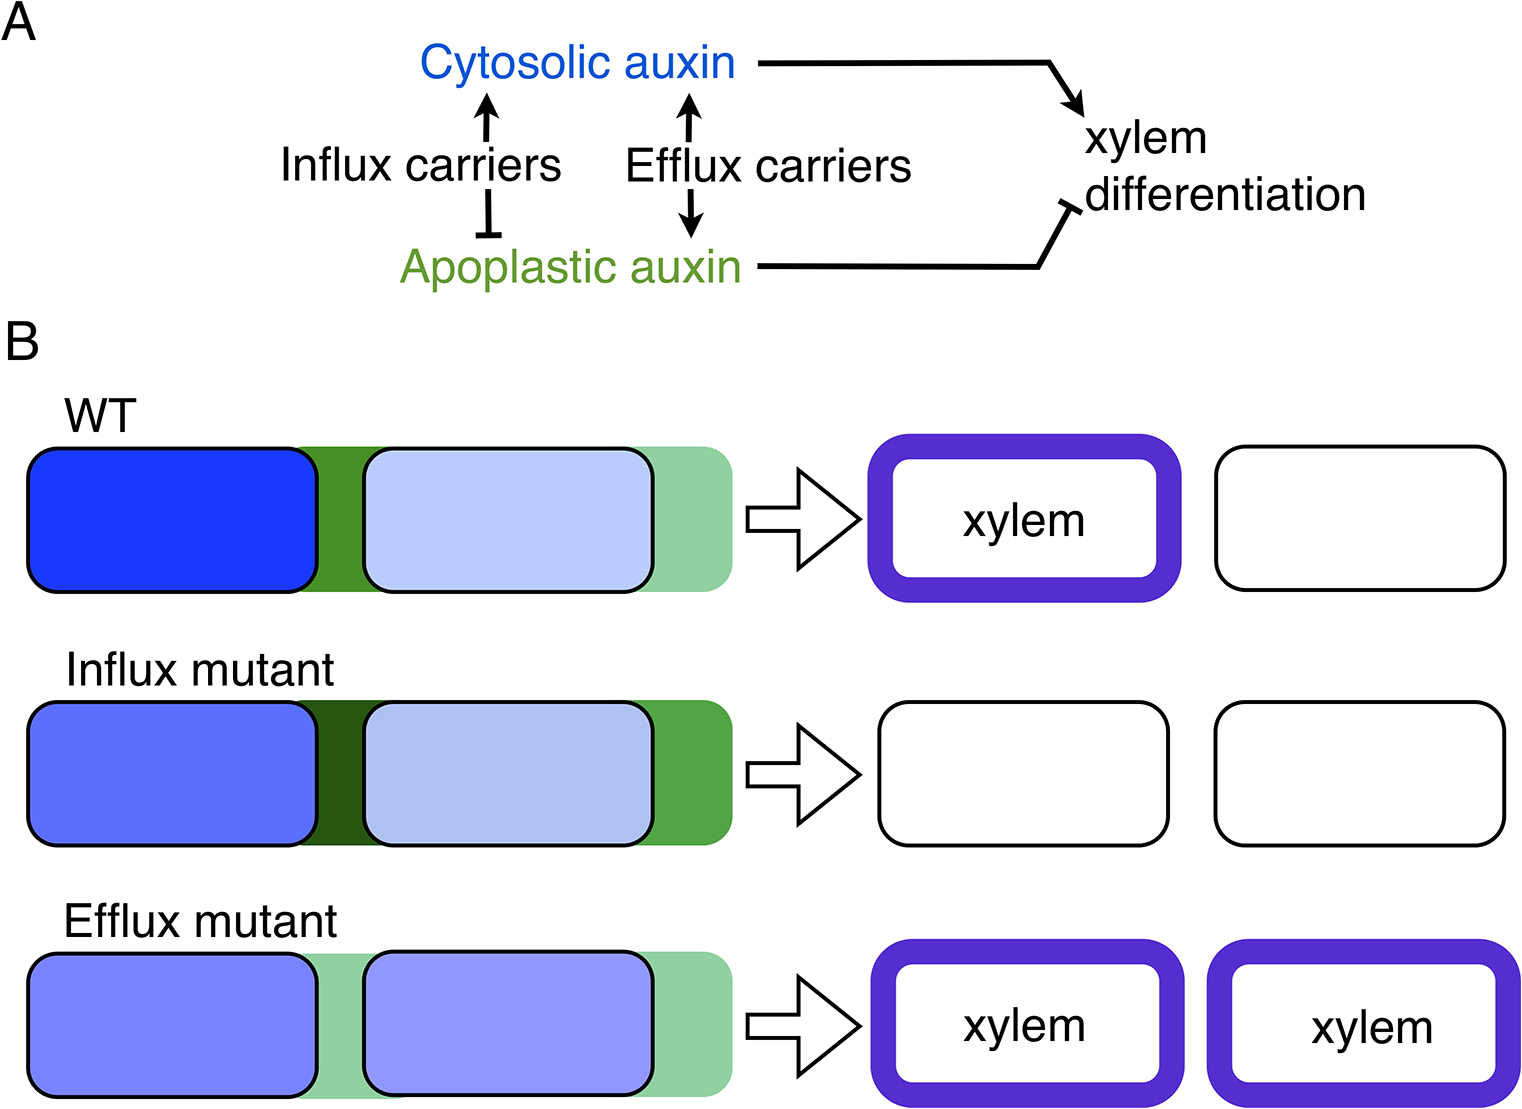 A model of apoplastic and cytoplasmic auxin control of xylem differentiation.